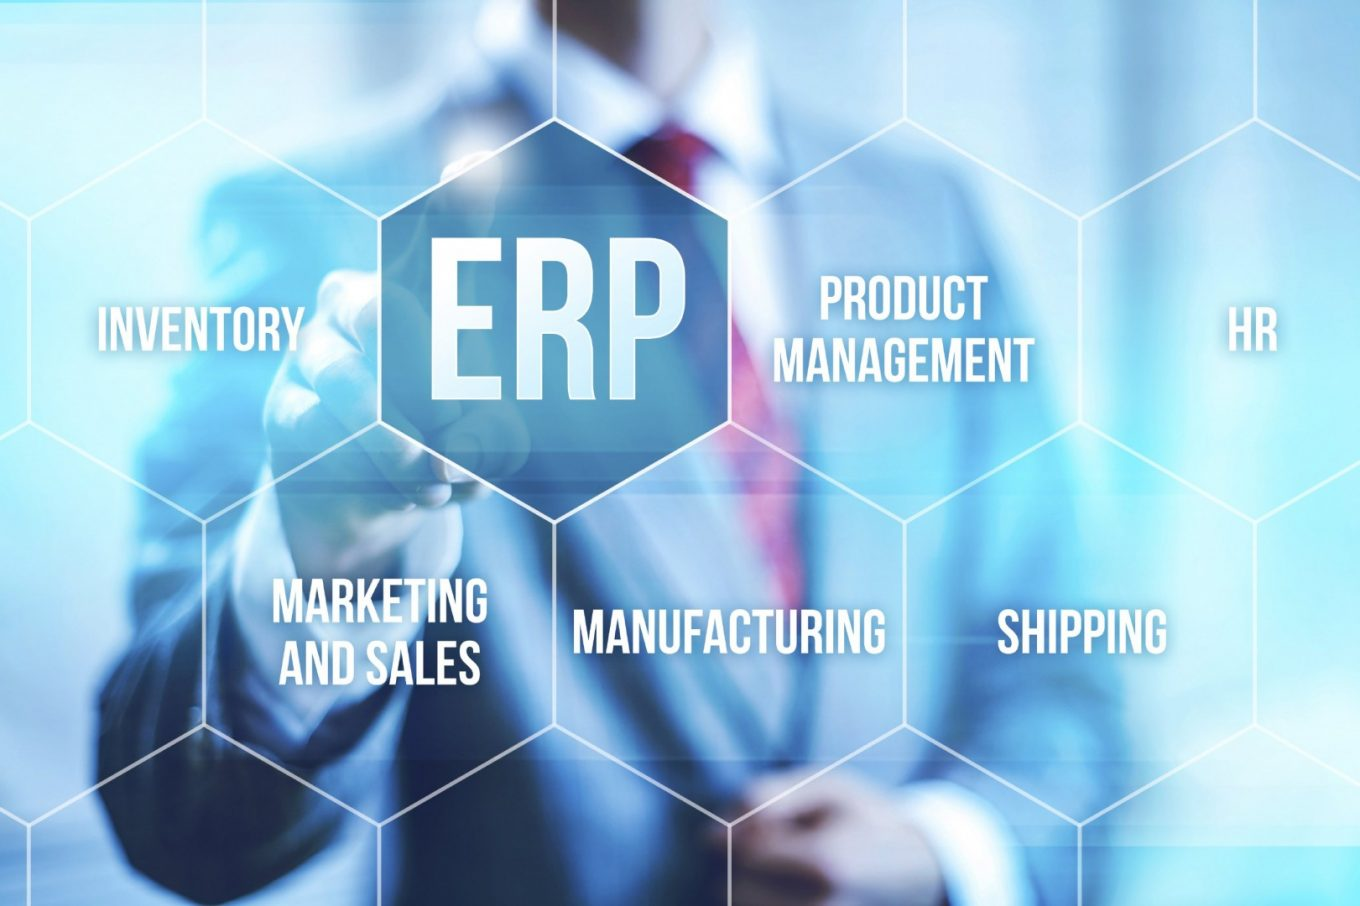 enterprise resource planning software solutions - The Importance Of ERP Software In Business